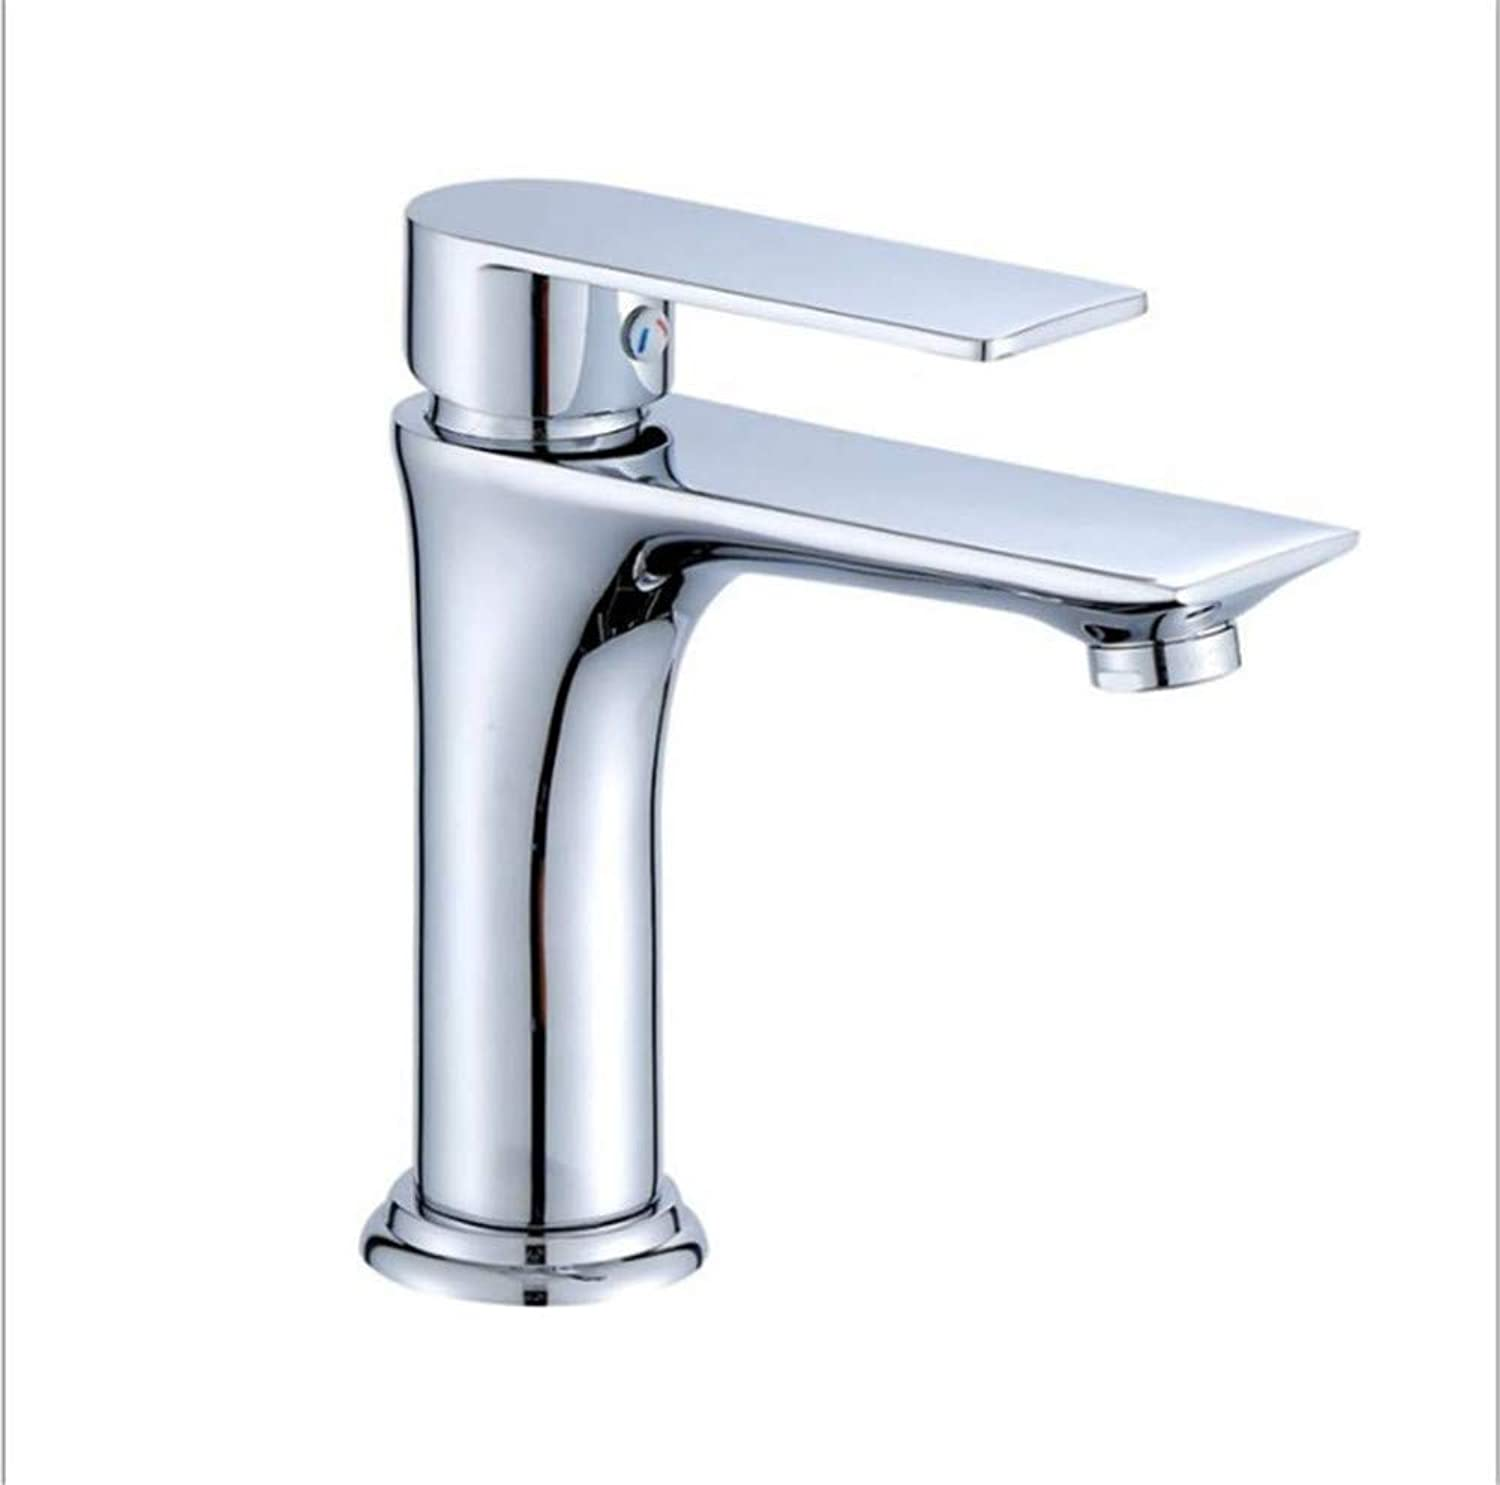 Water Tap Kitchen Taps Faucet Modern Kitchen Sink Taps Stainless Steelsingle-Hole Faucet Bathroom Mixed with Hot and Cold Water Faucet On The Platform of Basin Faucet